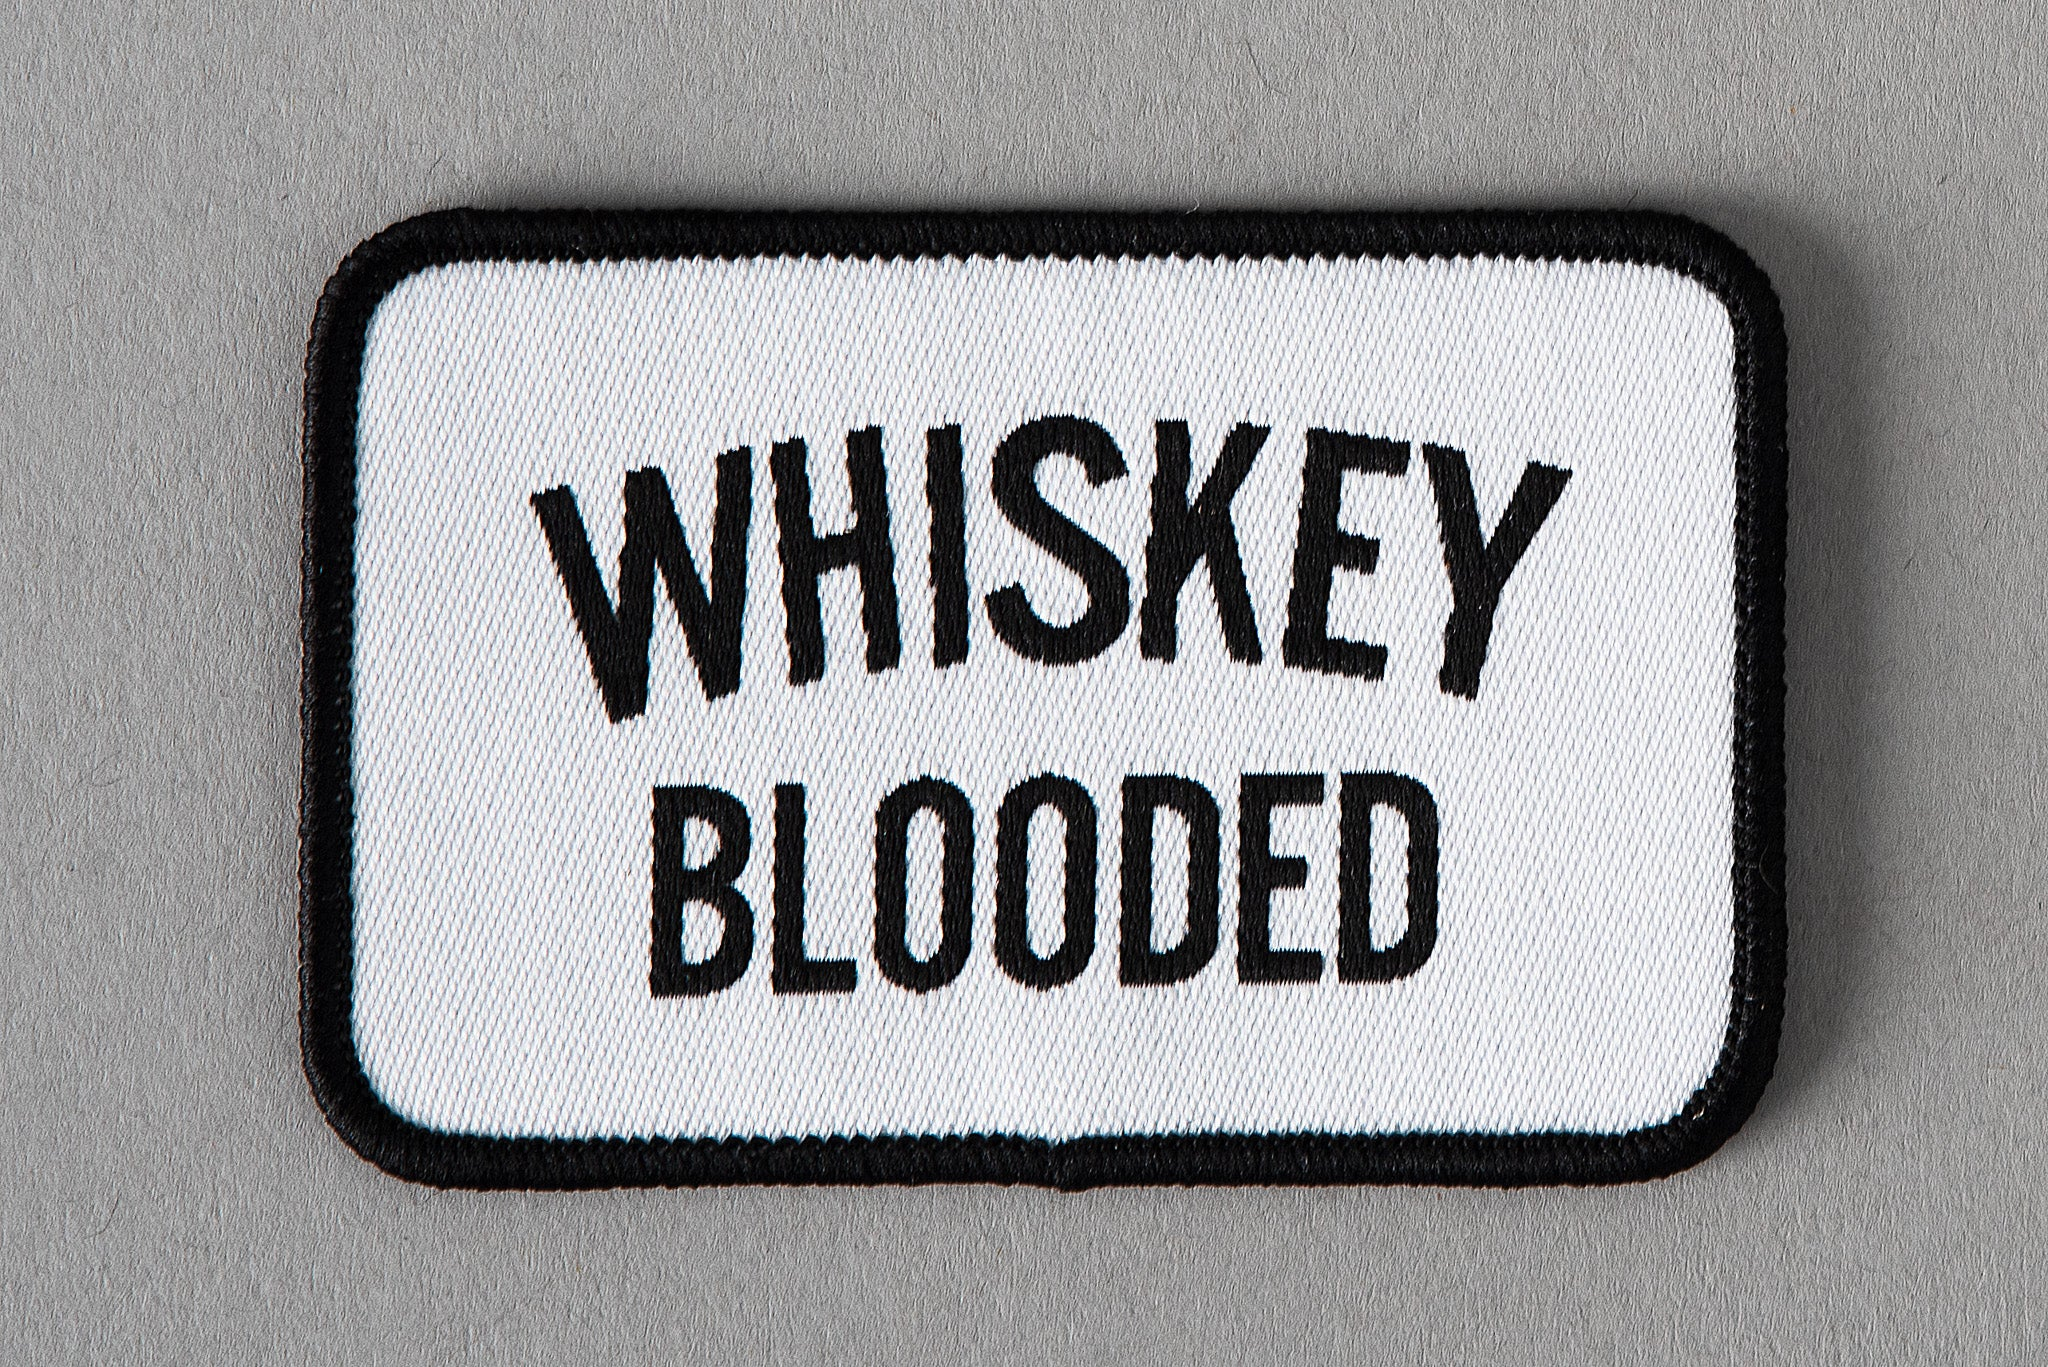 Whiskey Blooded | Patch | Manready Mercantile